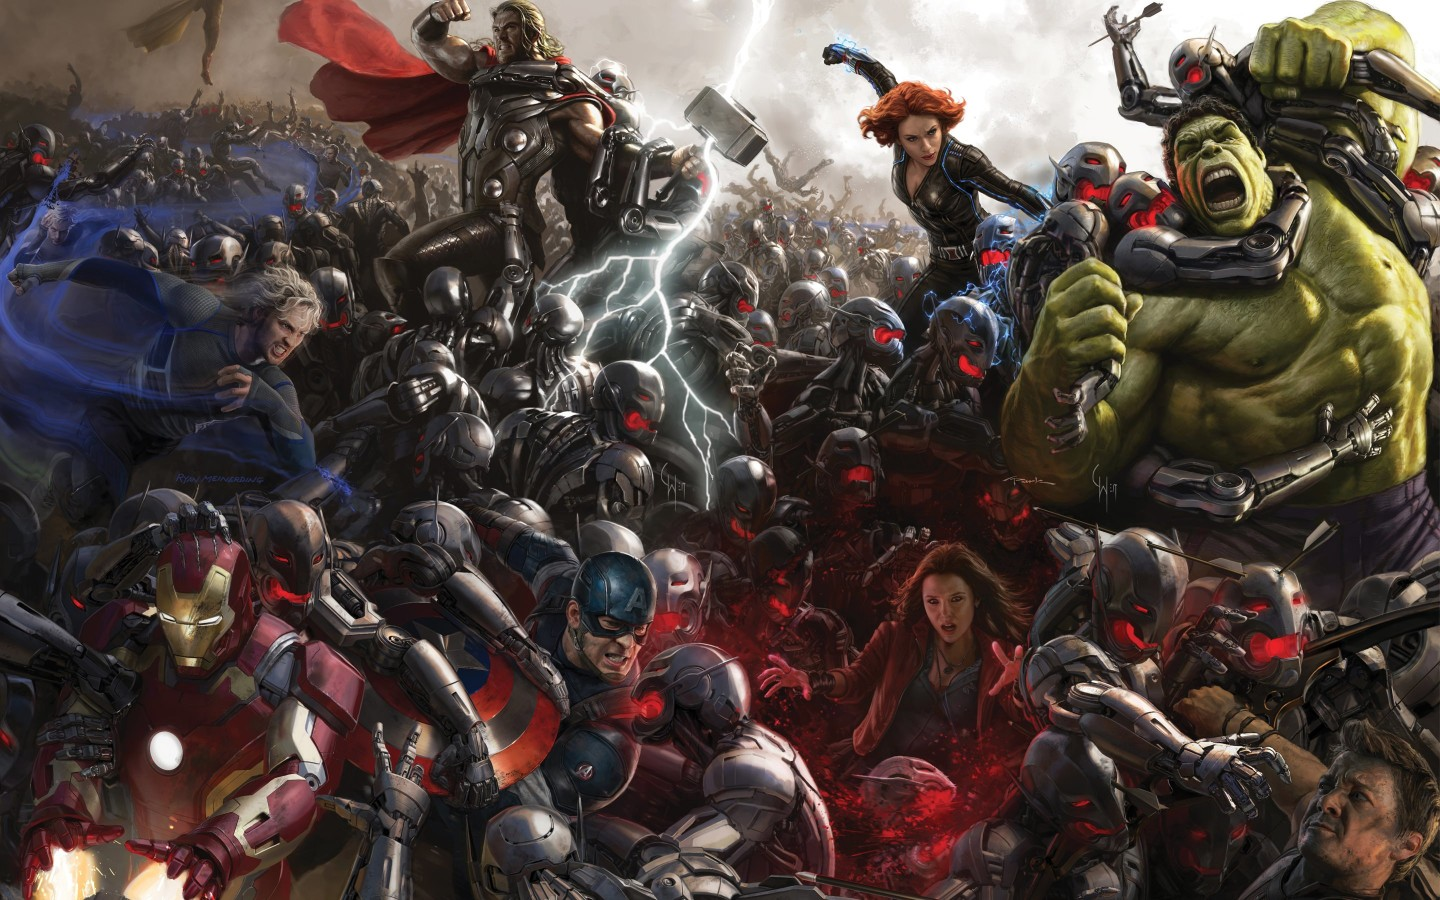 Avengers Age Of Ultron Concept Art Wallpaper for Desktop 1440x900